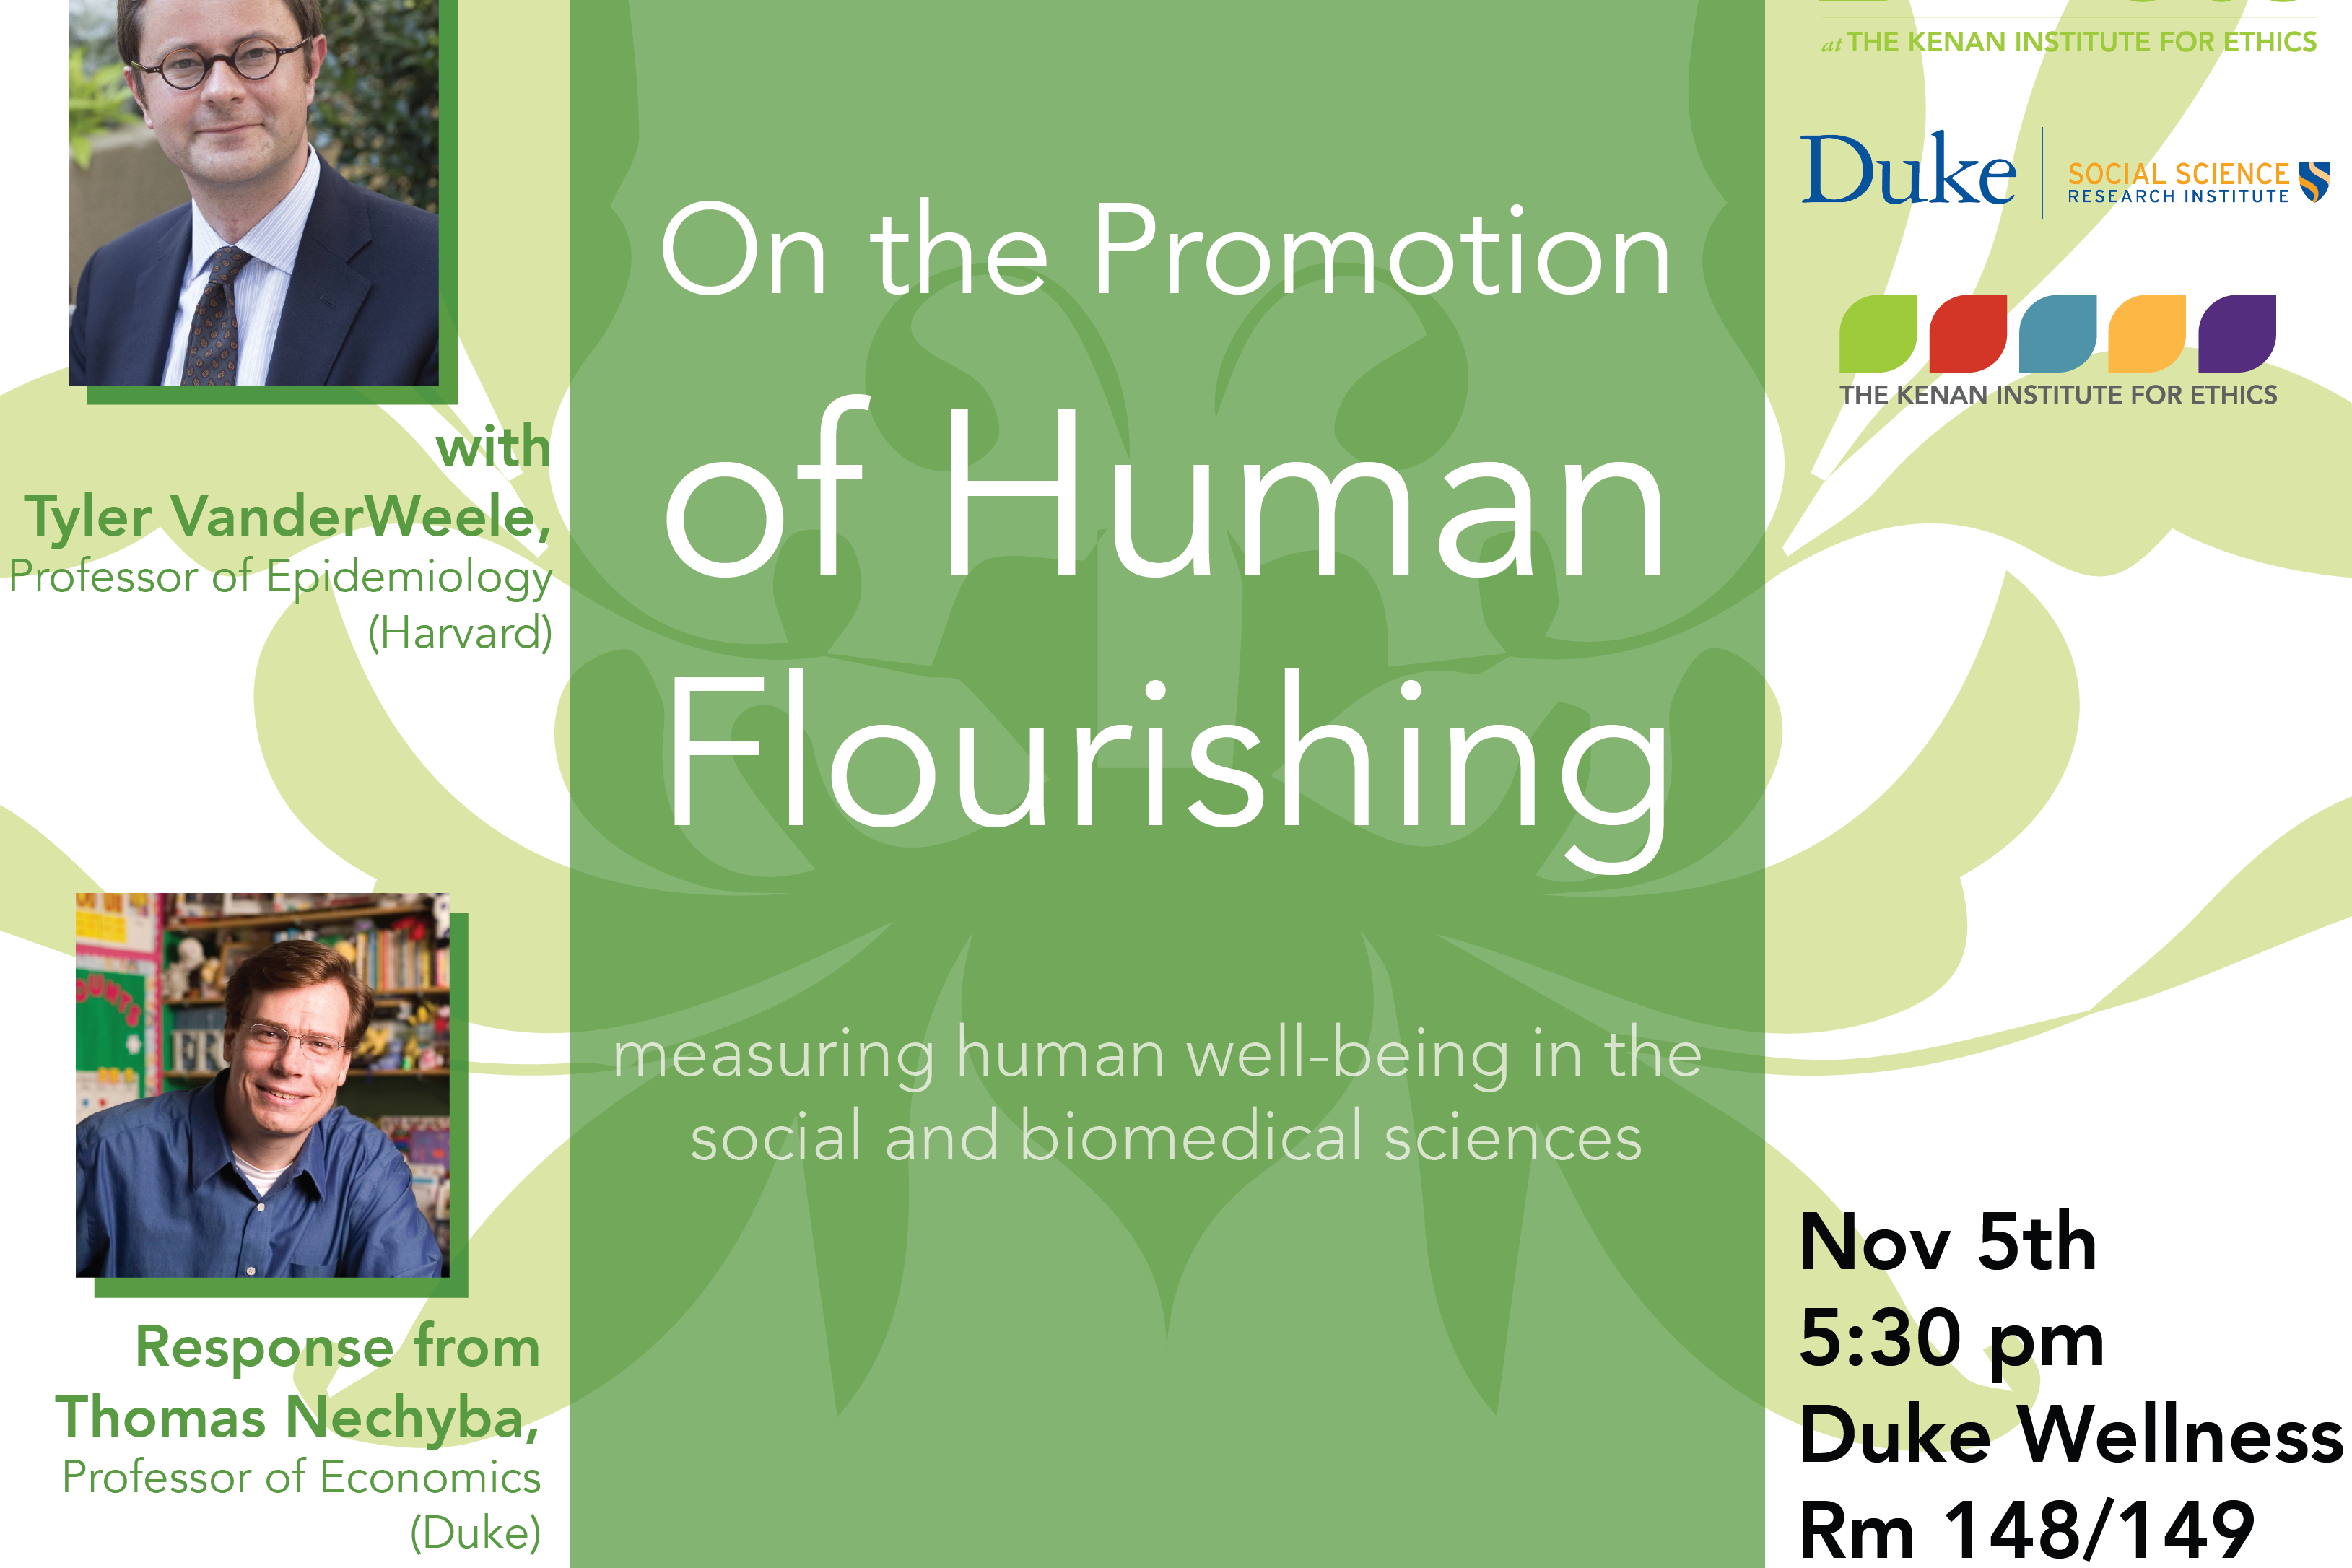 """On the Promotion of Human Flourishing"" by Tyler VanderWeele"